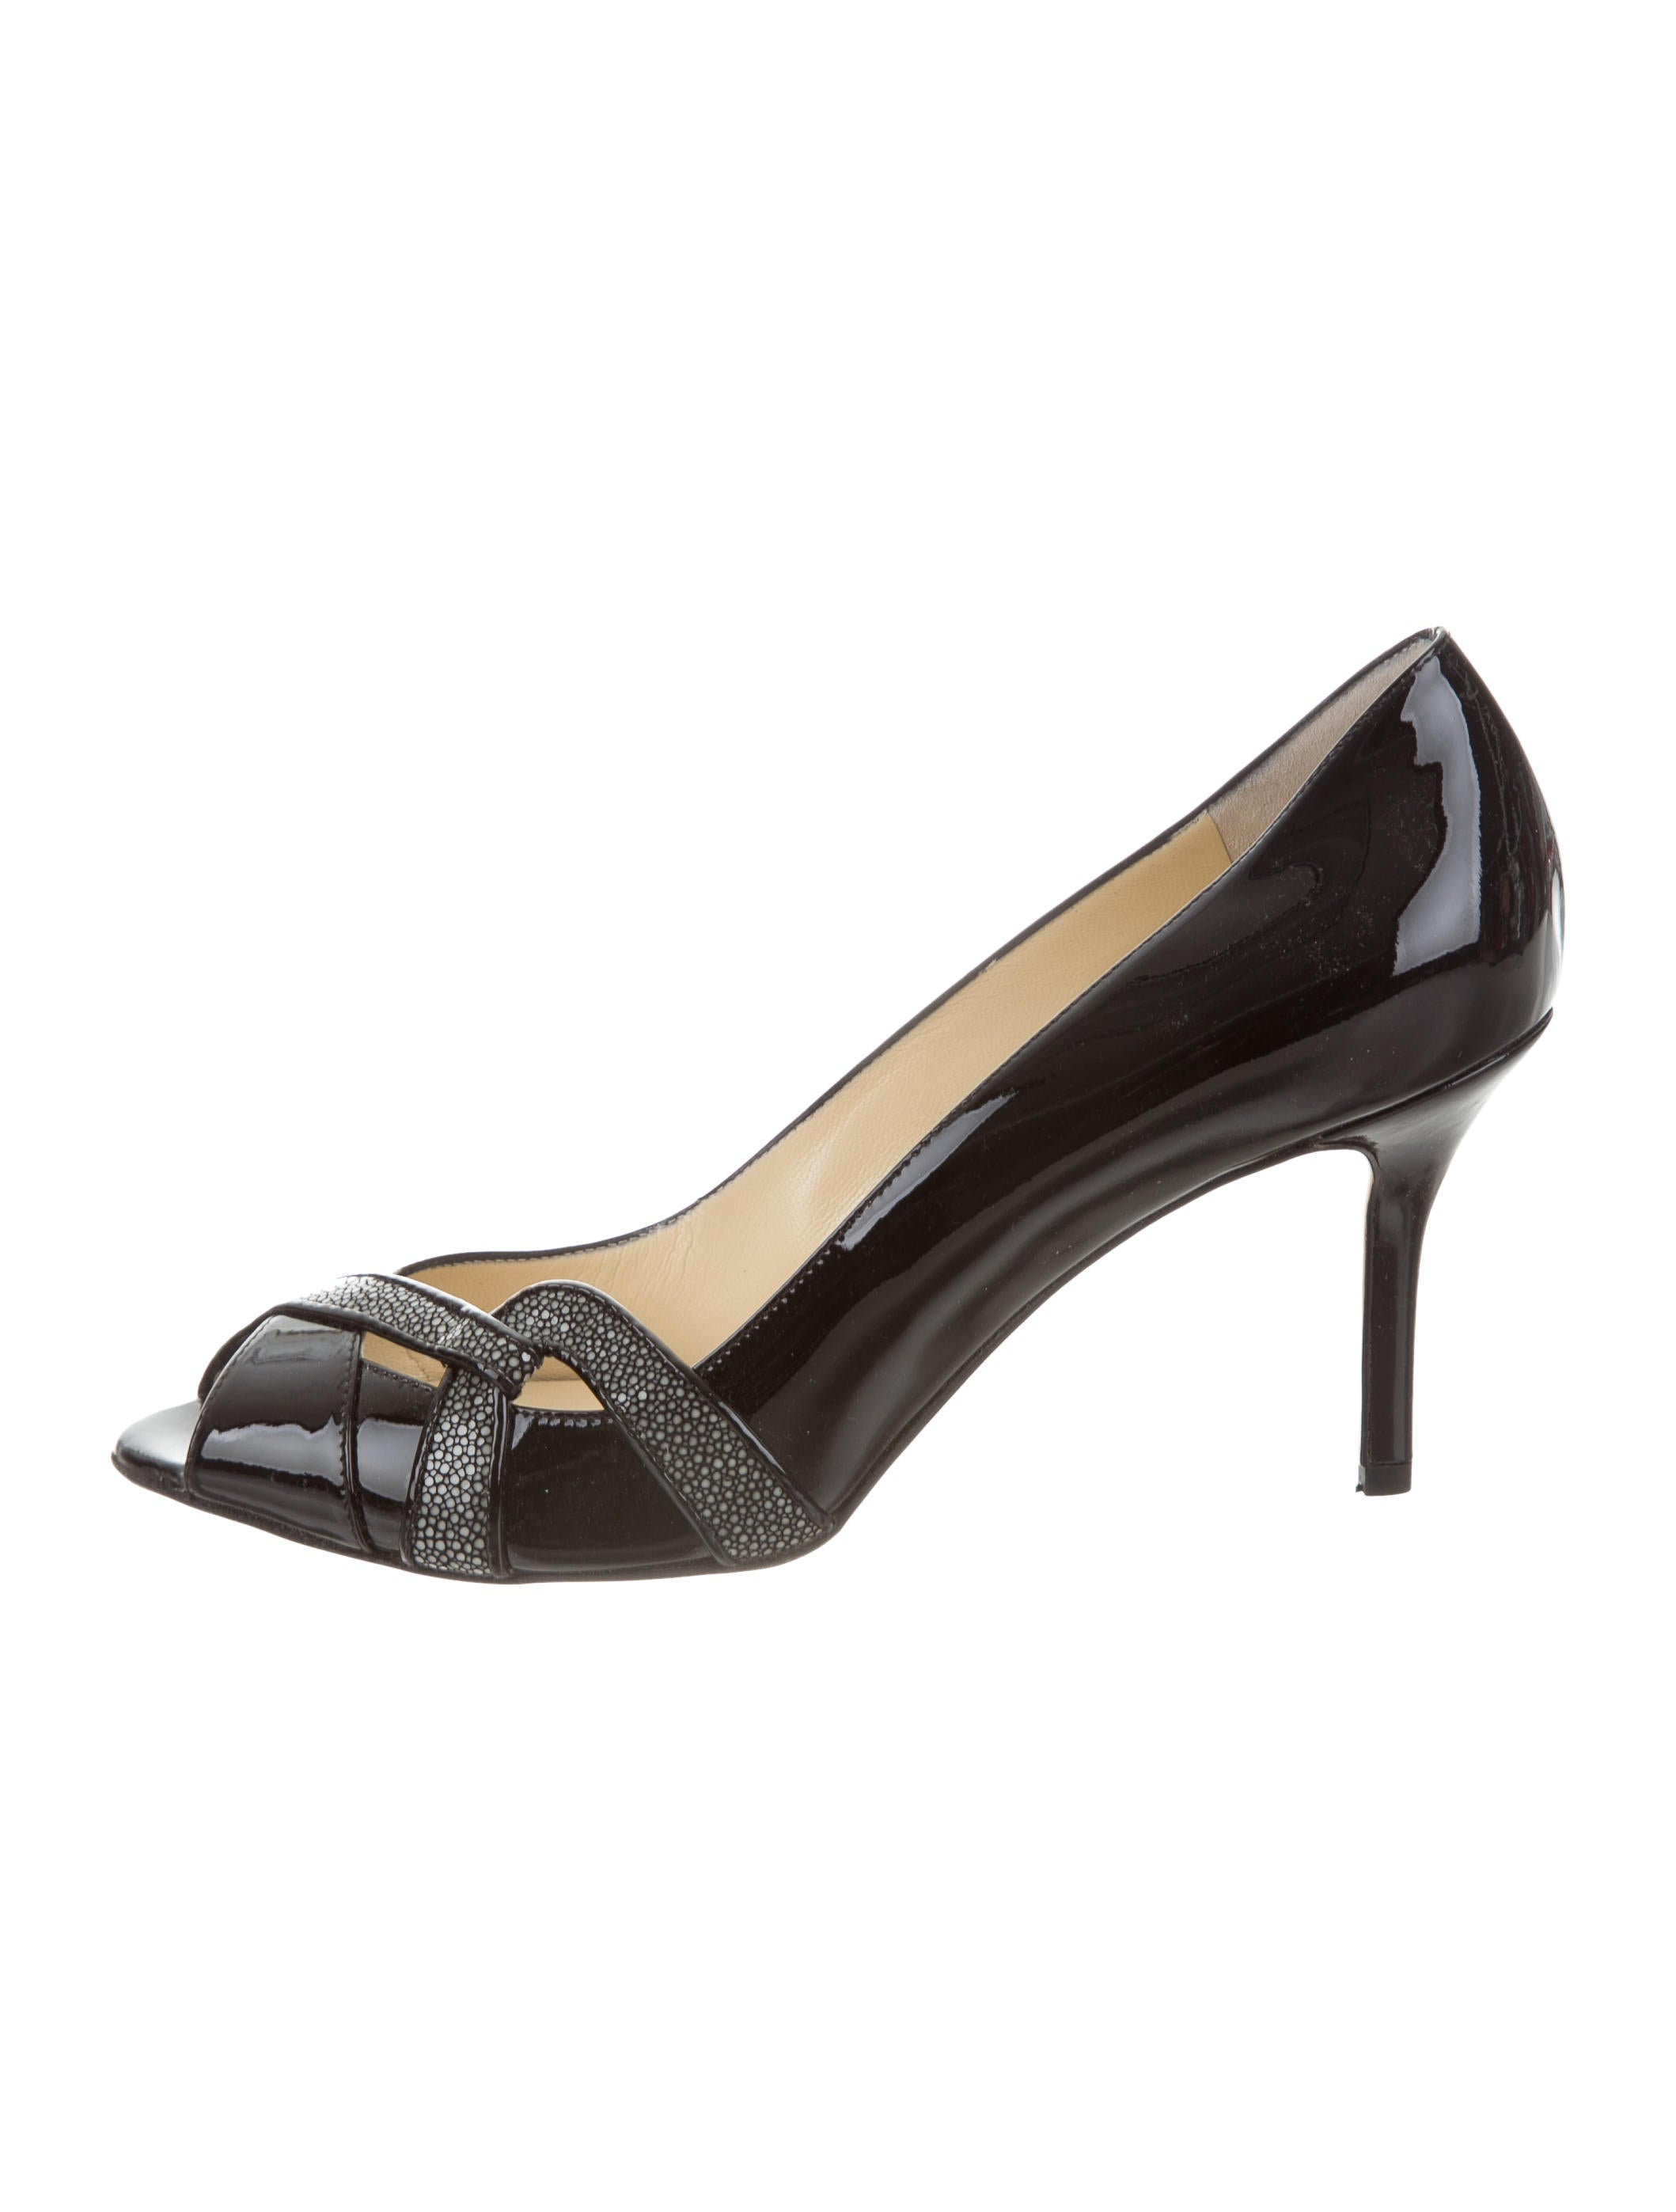 cheap sale real Sarah Flint Stingray-Trimmed Peep-Toe Pumps w/ Tags sale cost outlet new arrival outlet sast official online rPIkN1HEhA